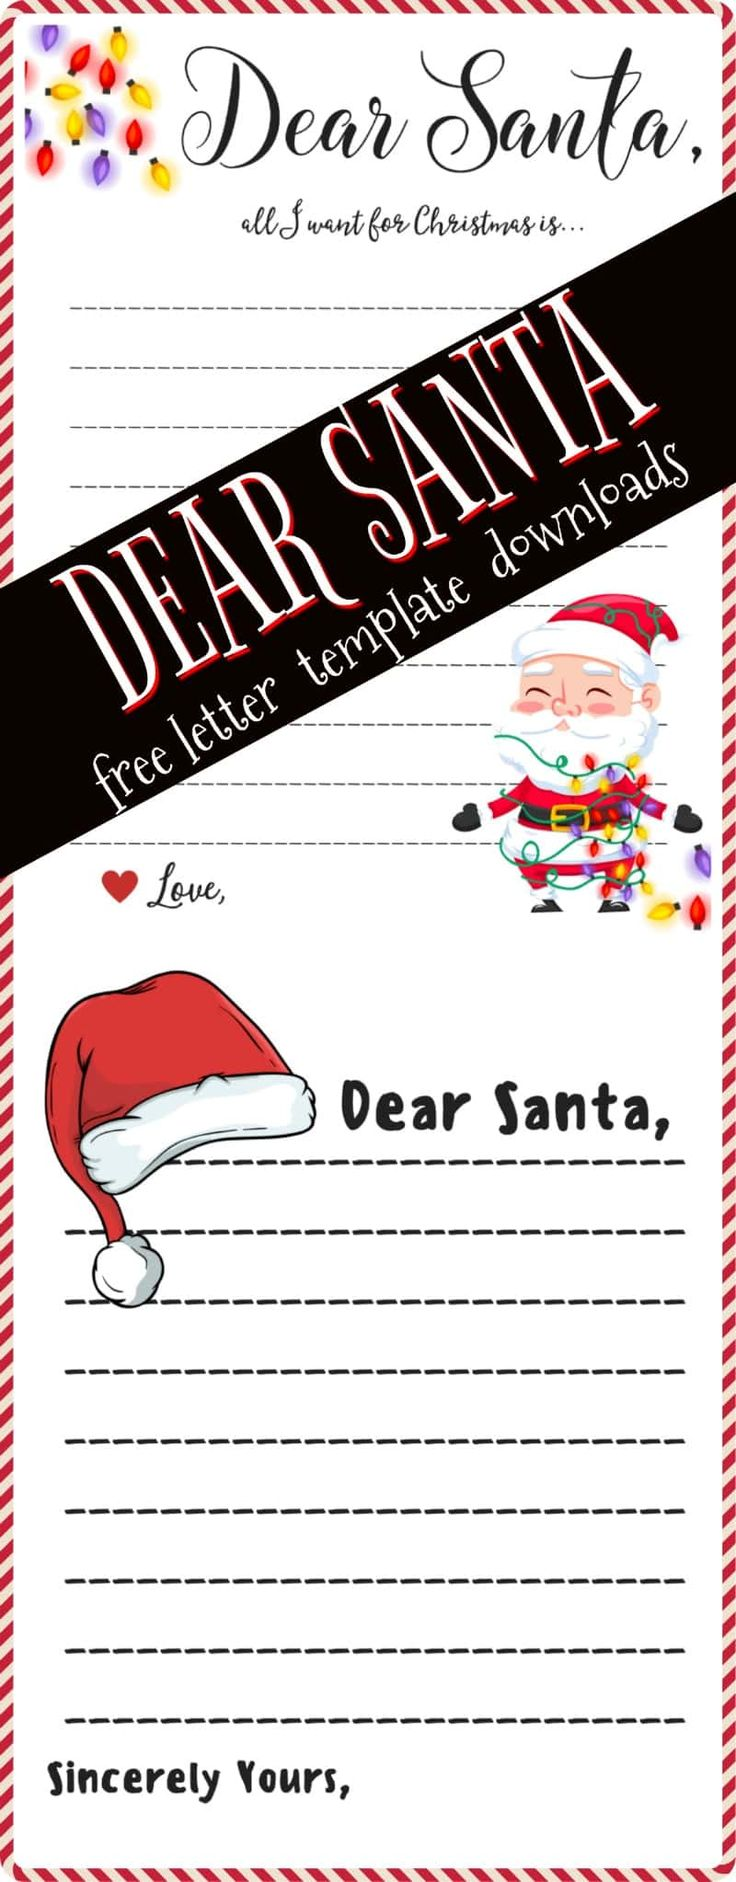 dear santa letter flickr photo 1353 best free printables amp downloads images on 670